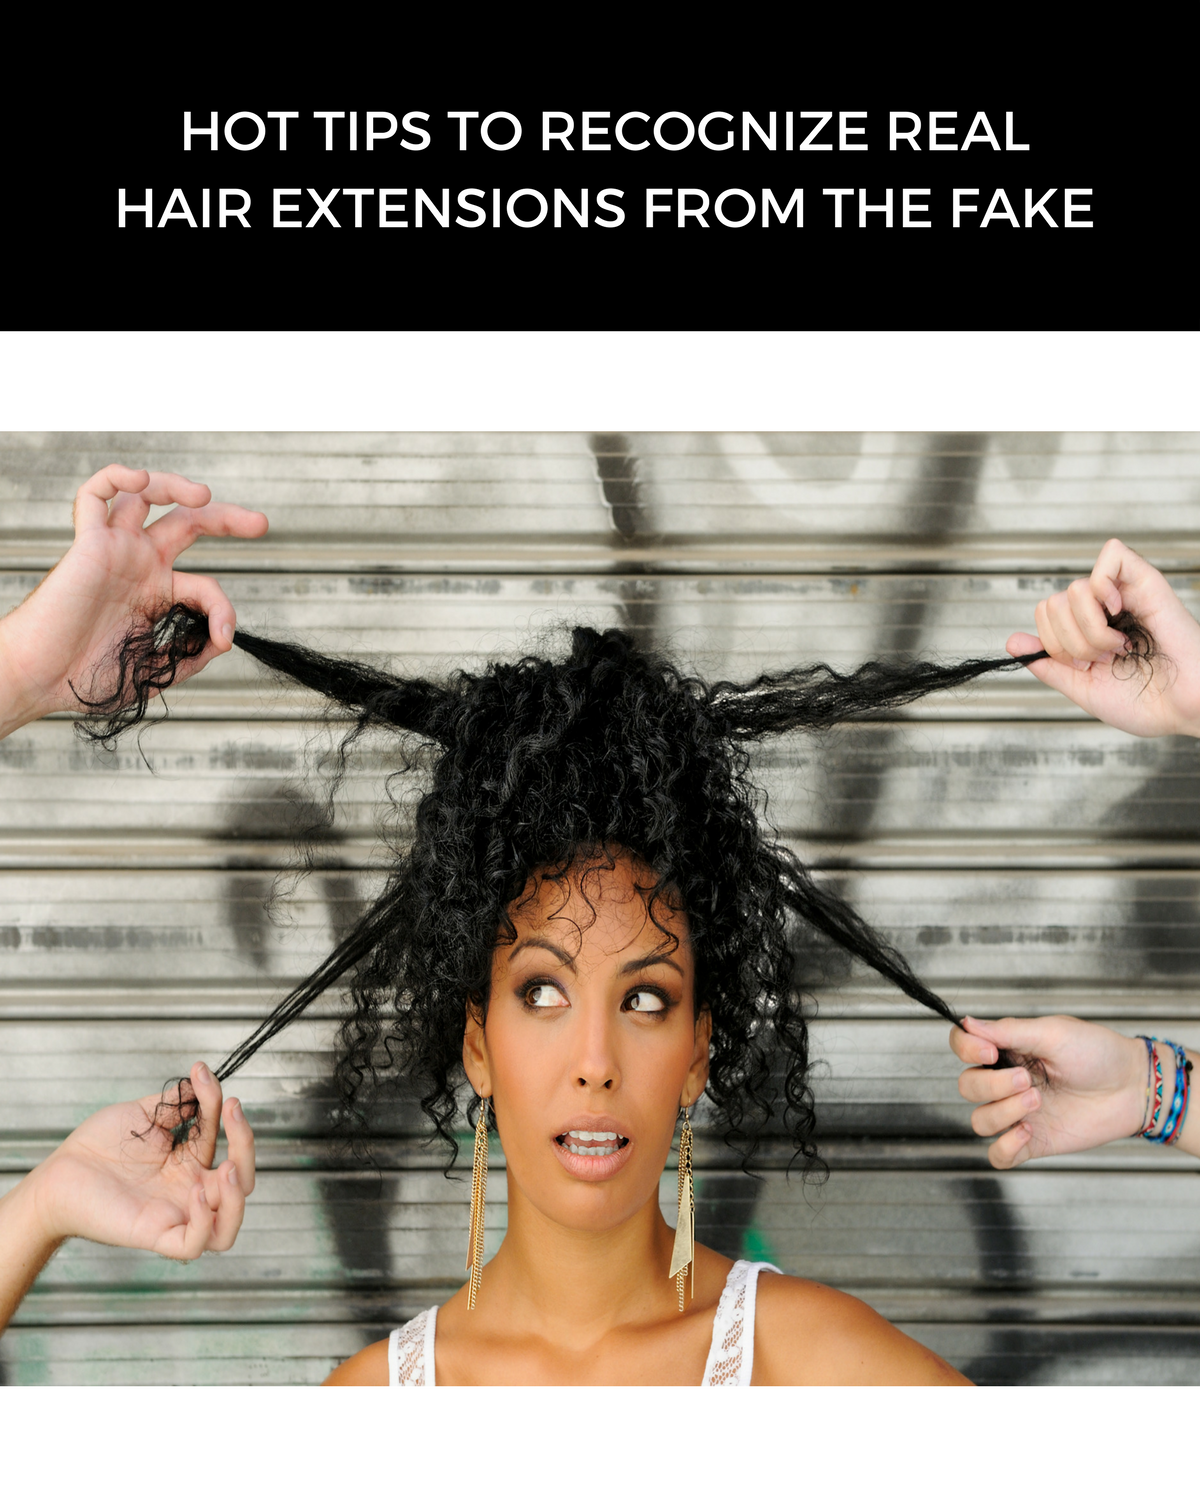 Hot Tips To Recognize Real Hair Extensions From The Fake Salon